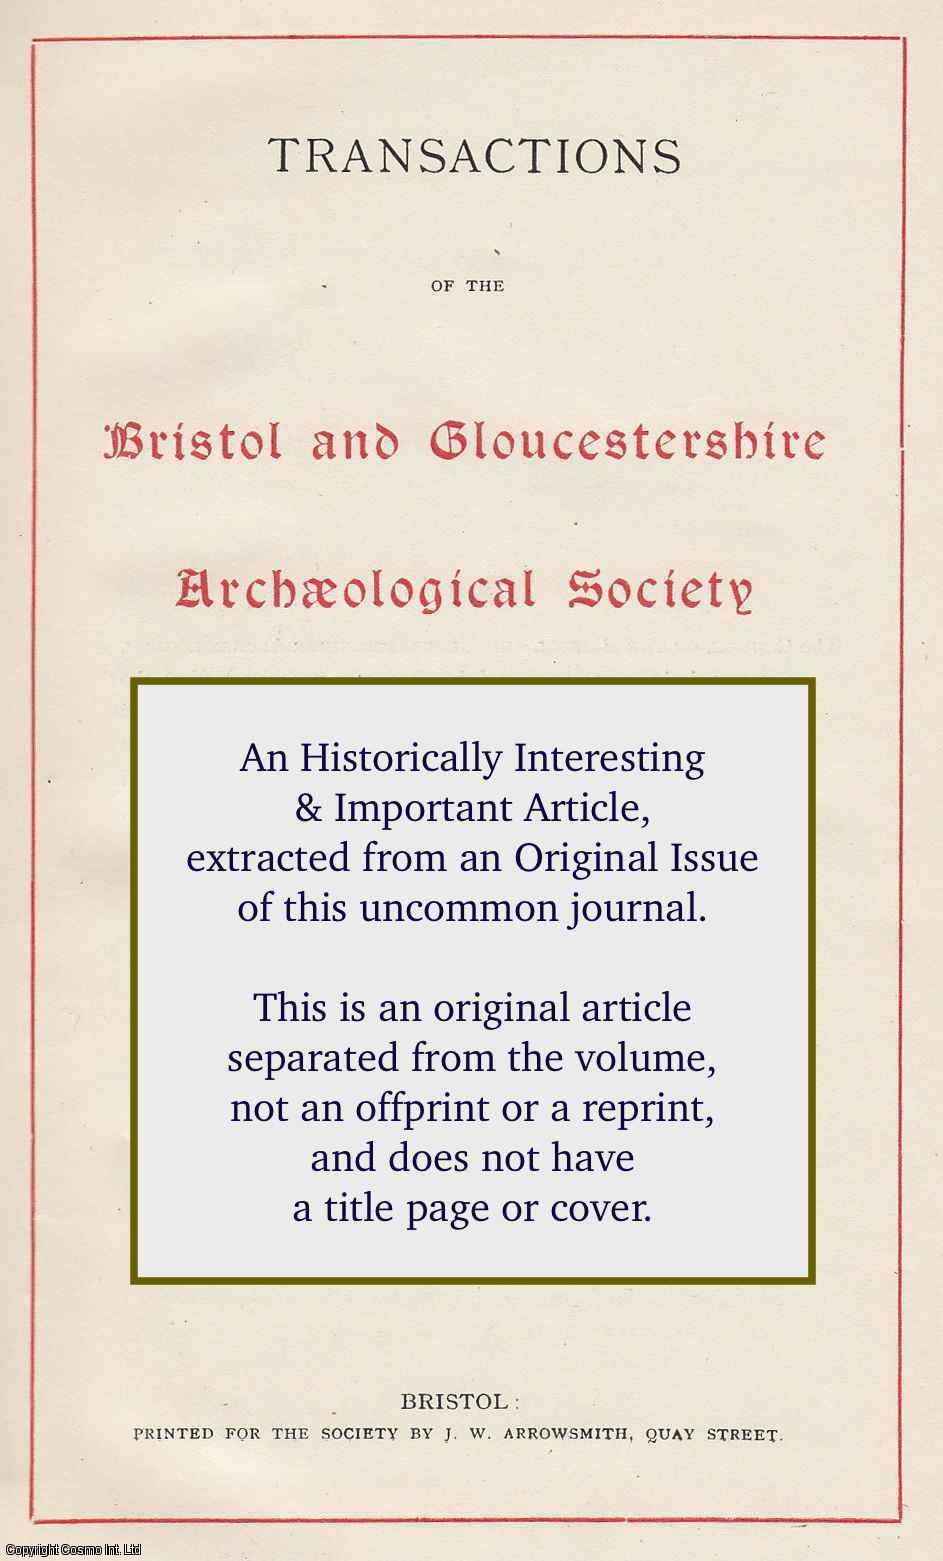 WILKINSON, DAVID - Two Anglo-Saxon Graves at Kemble. An original article from the Bristol and Gloucestershire Archaeological Society 1988.